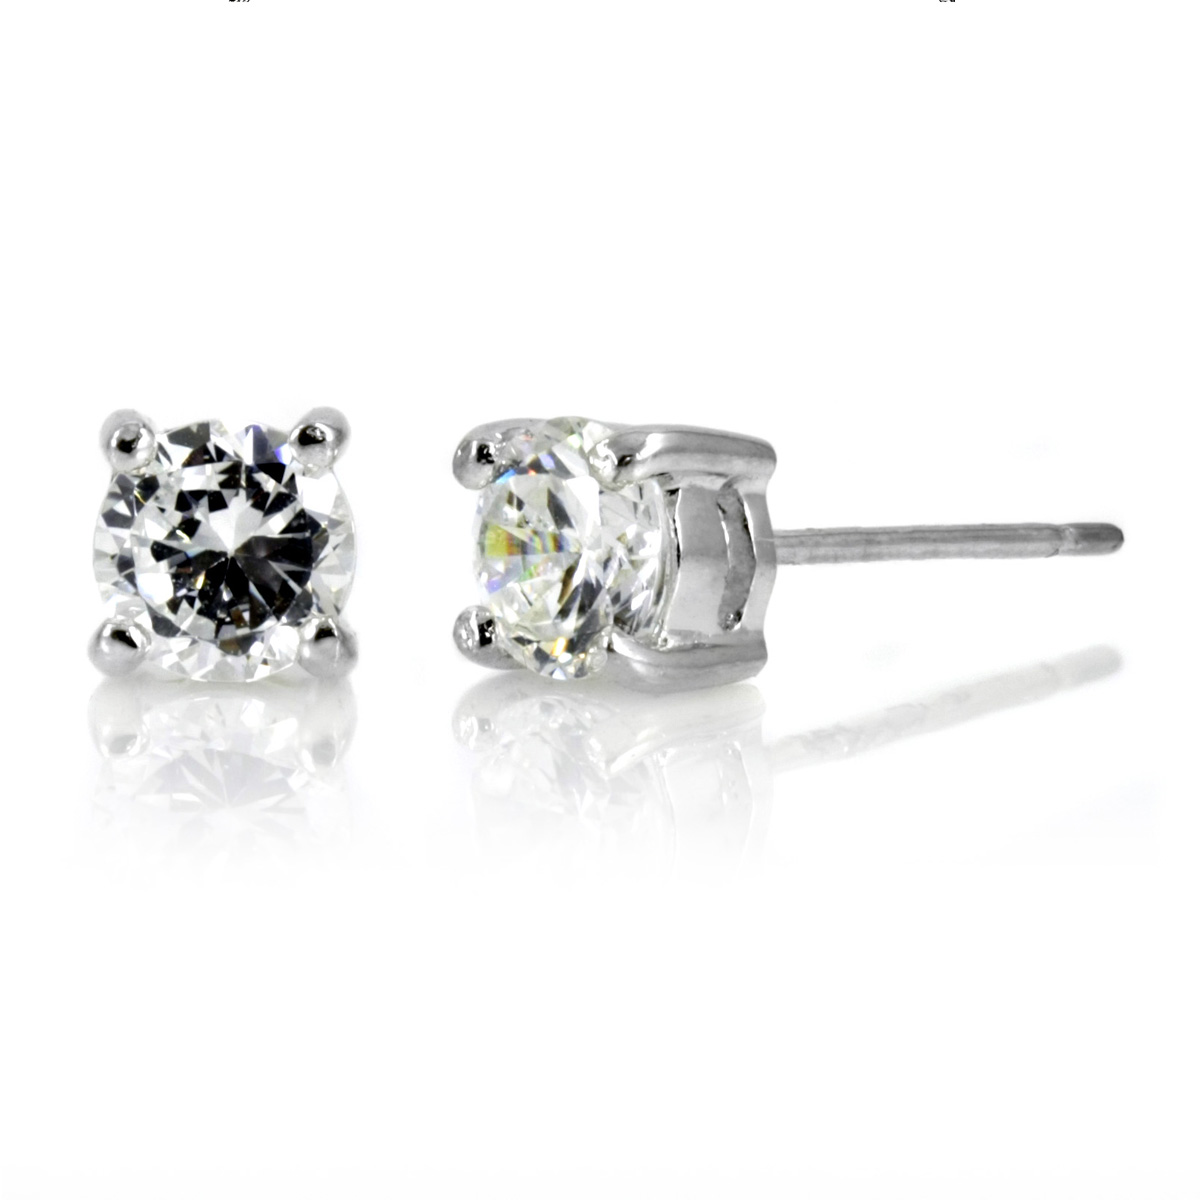 Magnetic Earrings With Real Diamonds Ikos 4 Tcw Cz Stud